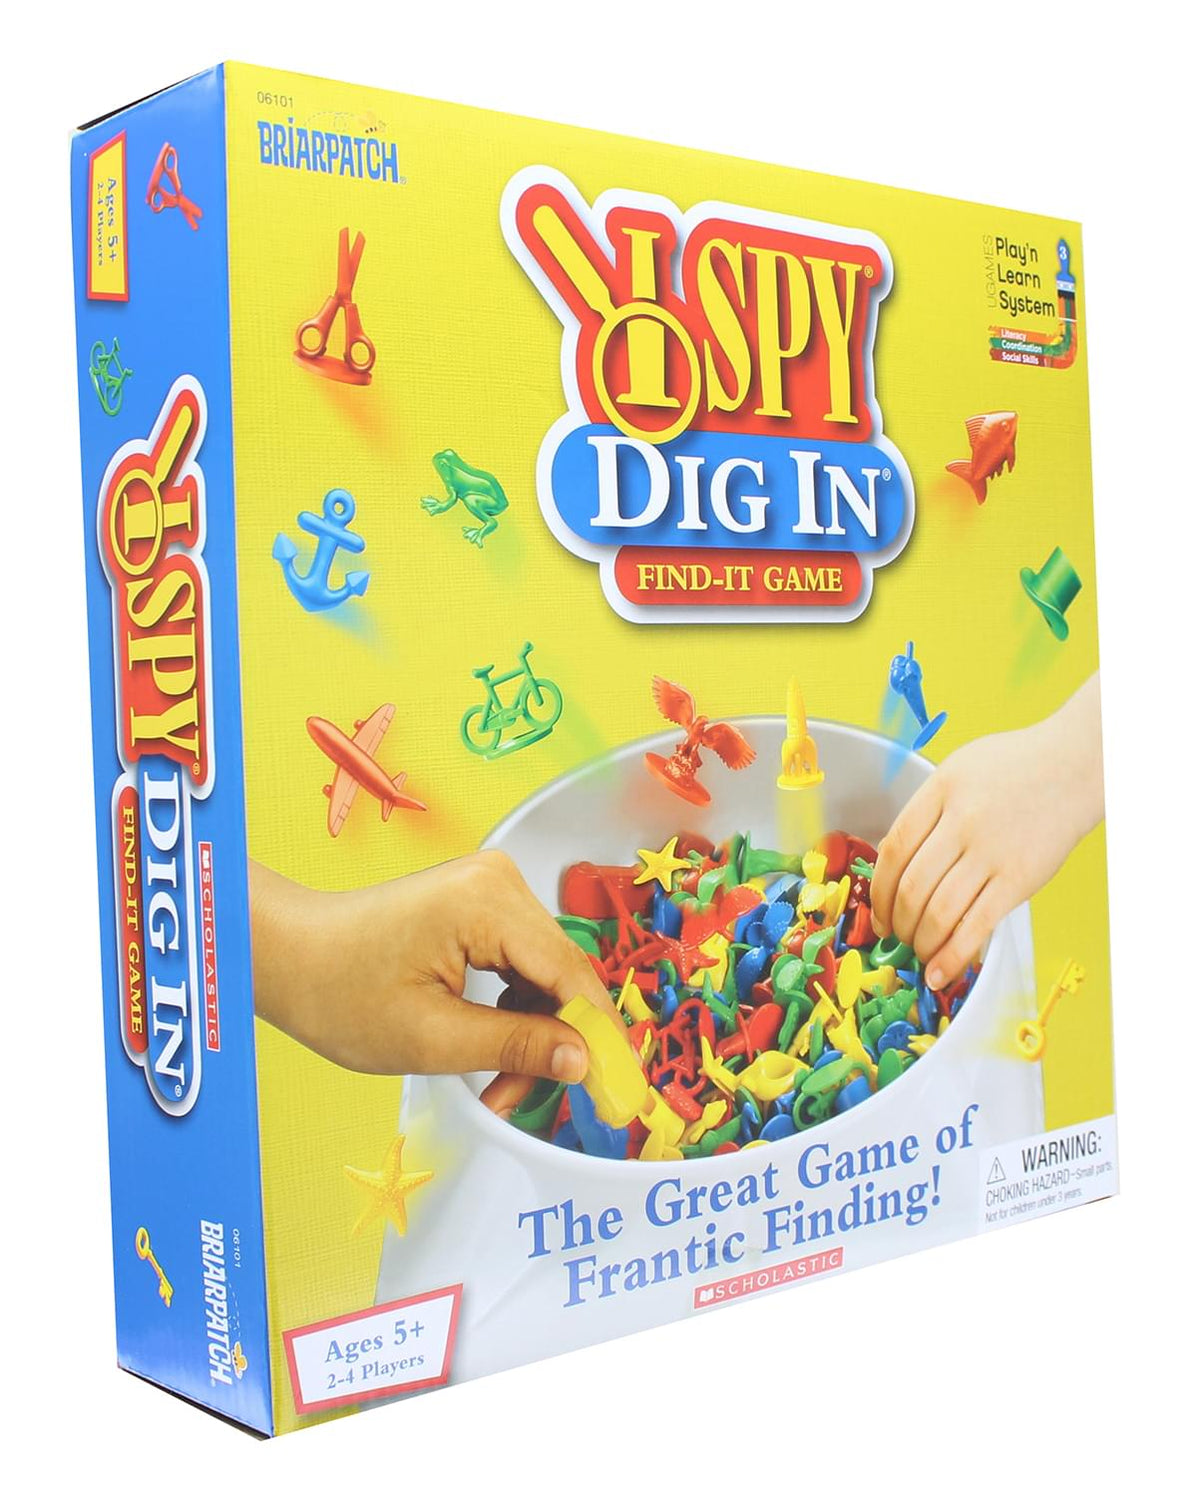 I Spy Dig In Frantic Finding Game | For 2-4 Players